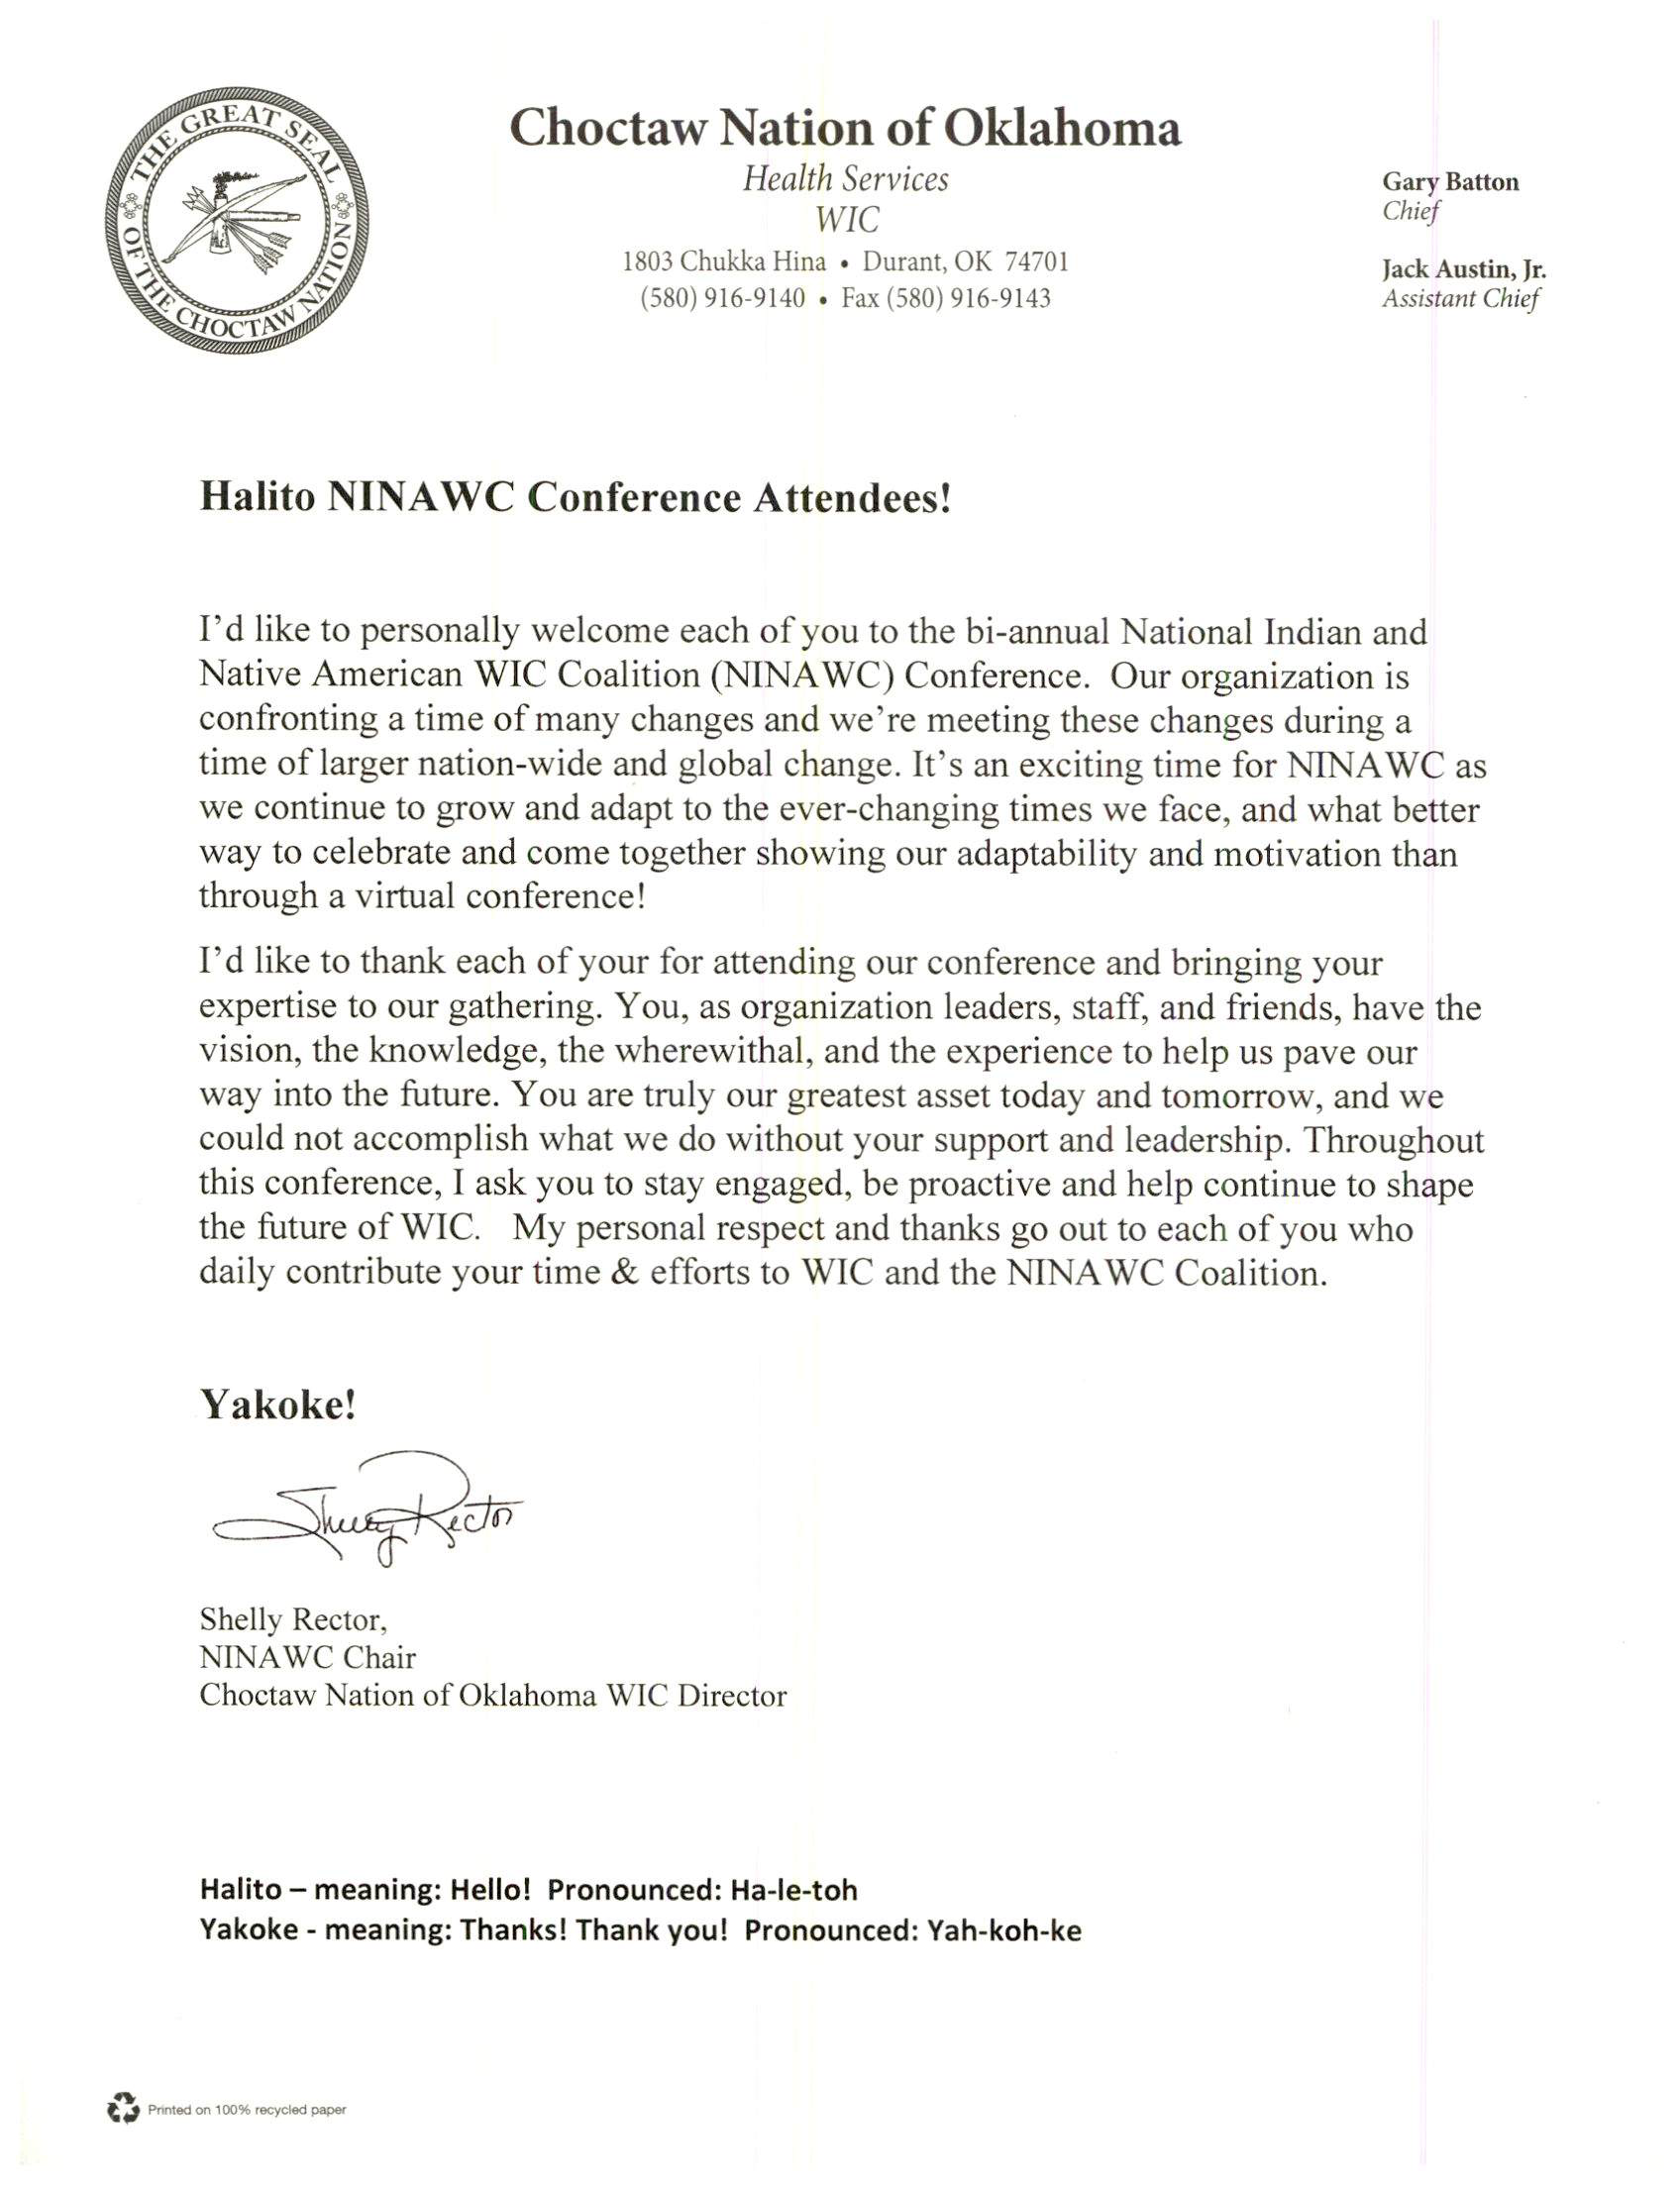 Welcome Letter from Choctaw Nation of Oklahoma WIC Director